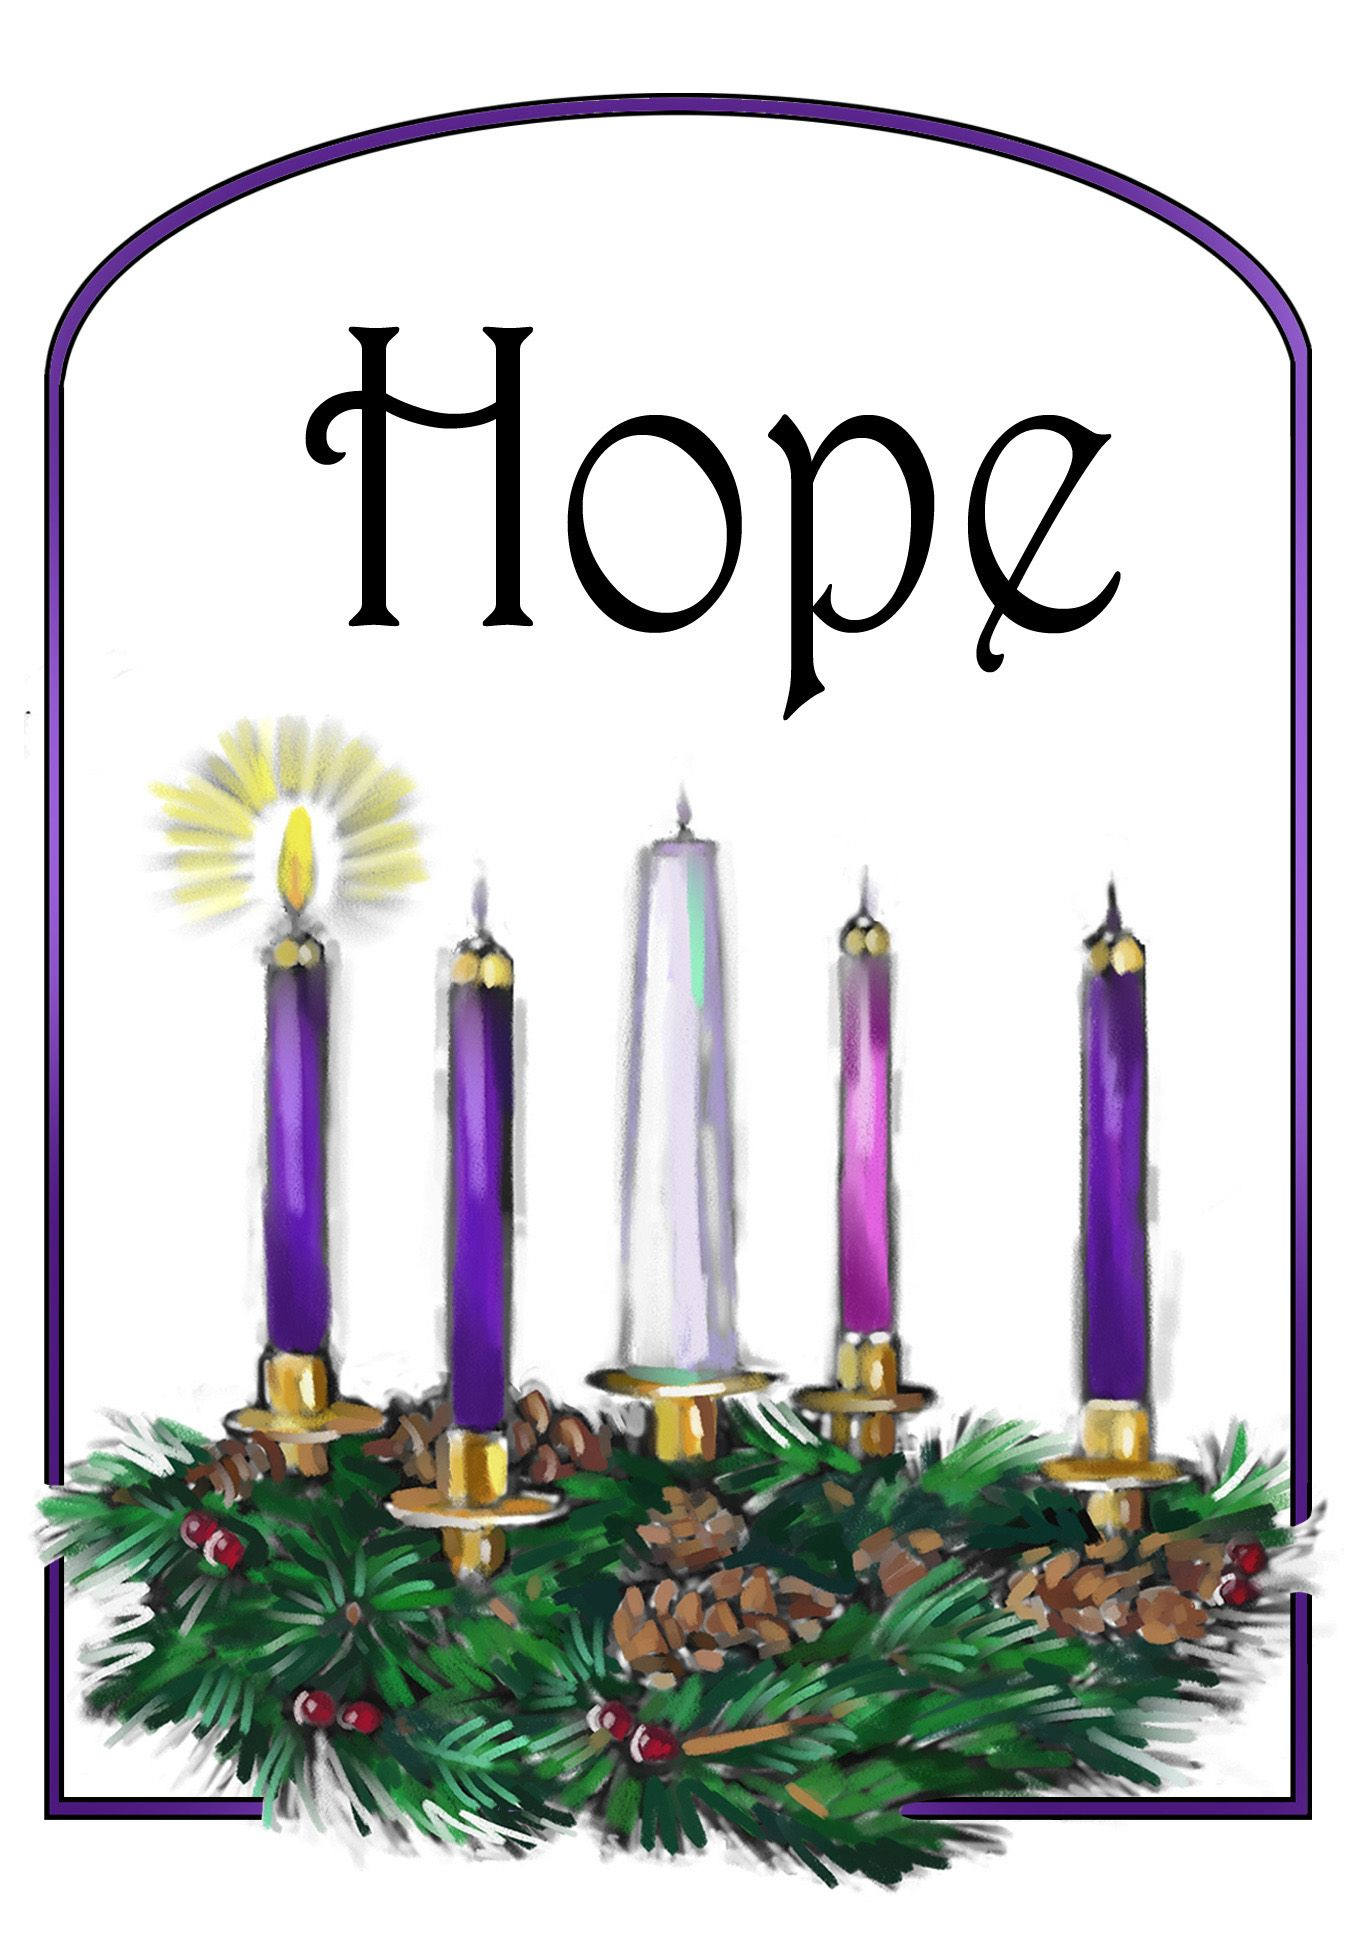 14 cliparts for free. Download Advent clipart anglican advent wreath.